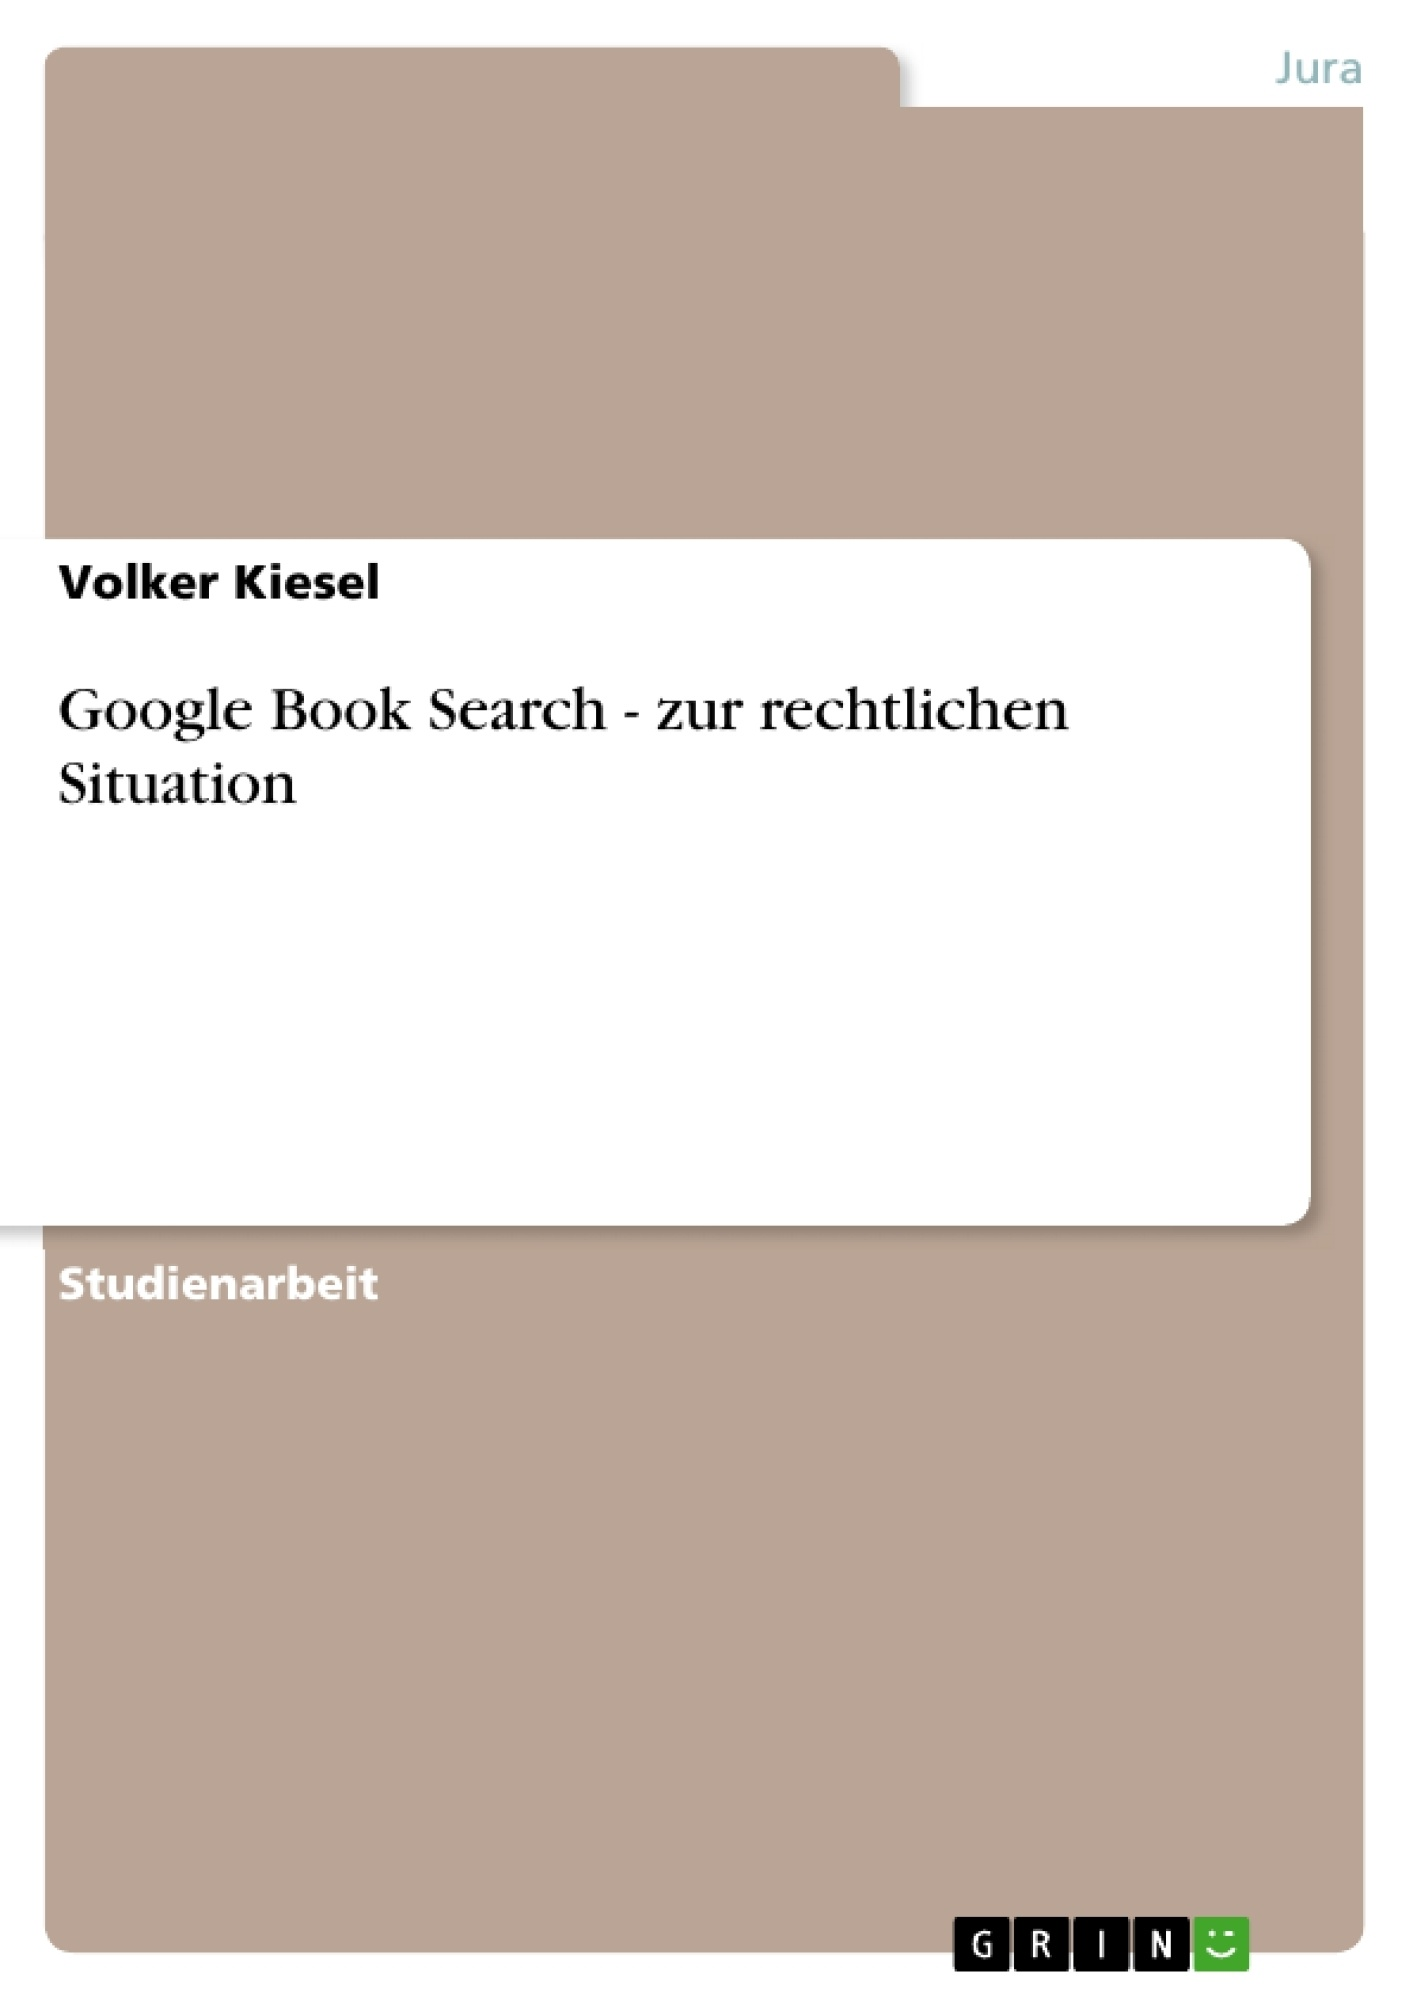 Titel: Google Book Search - zur rechtlichen Situation